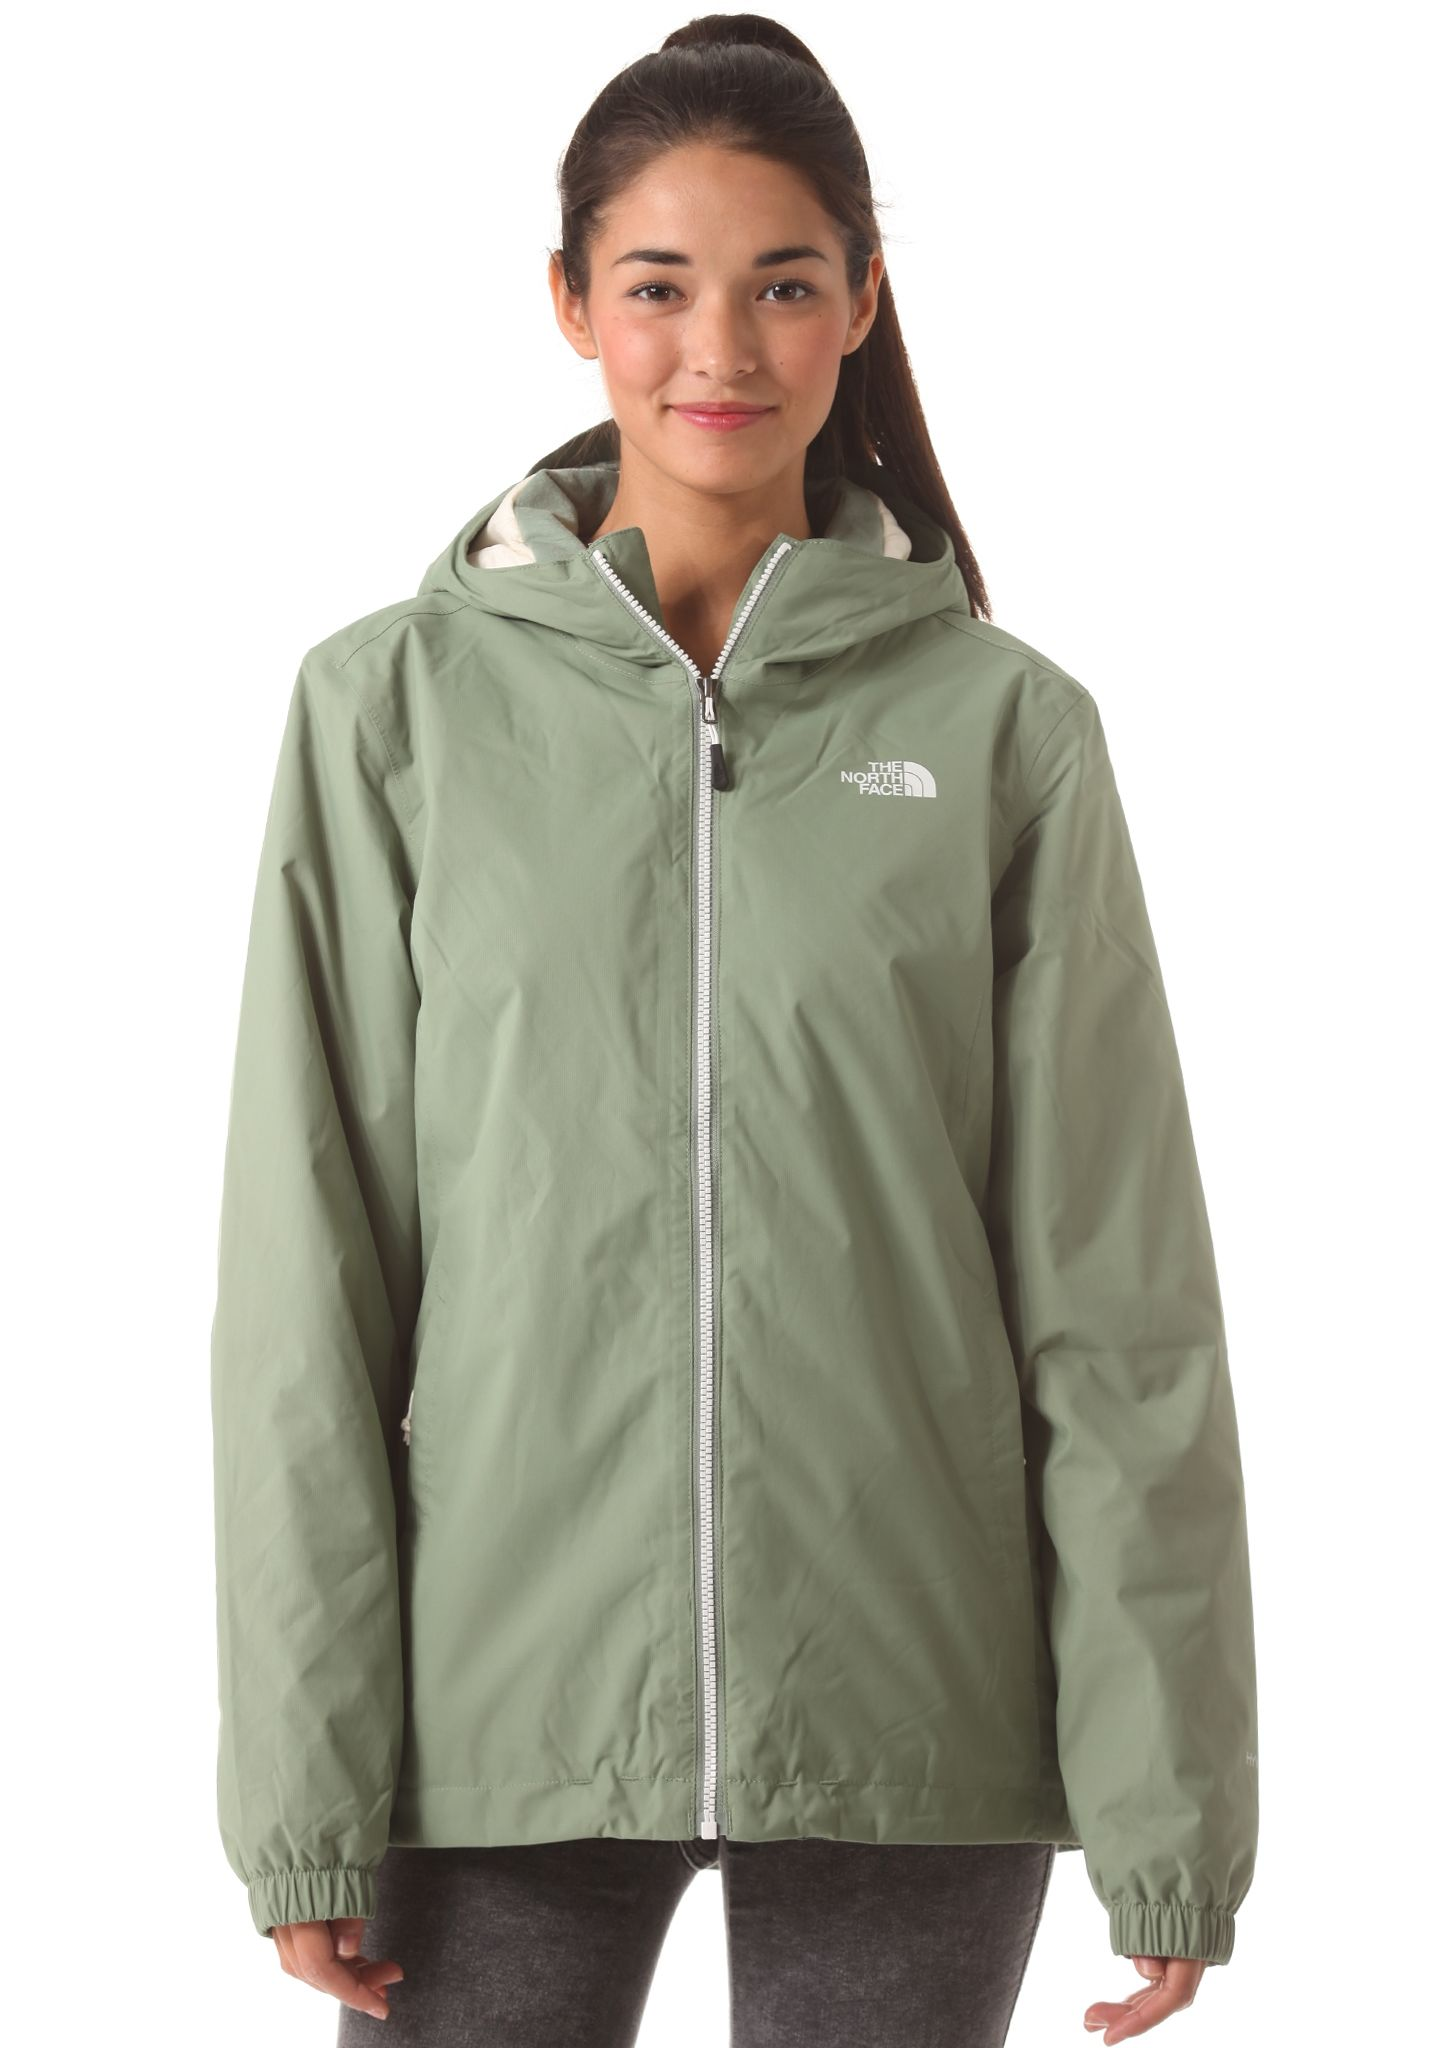 d3446df5c6 THE NORTH FACE Quest Insulated - Functional Jacket for Women - Green -  Planet Sports